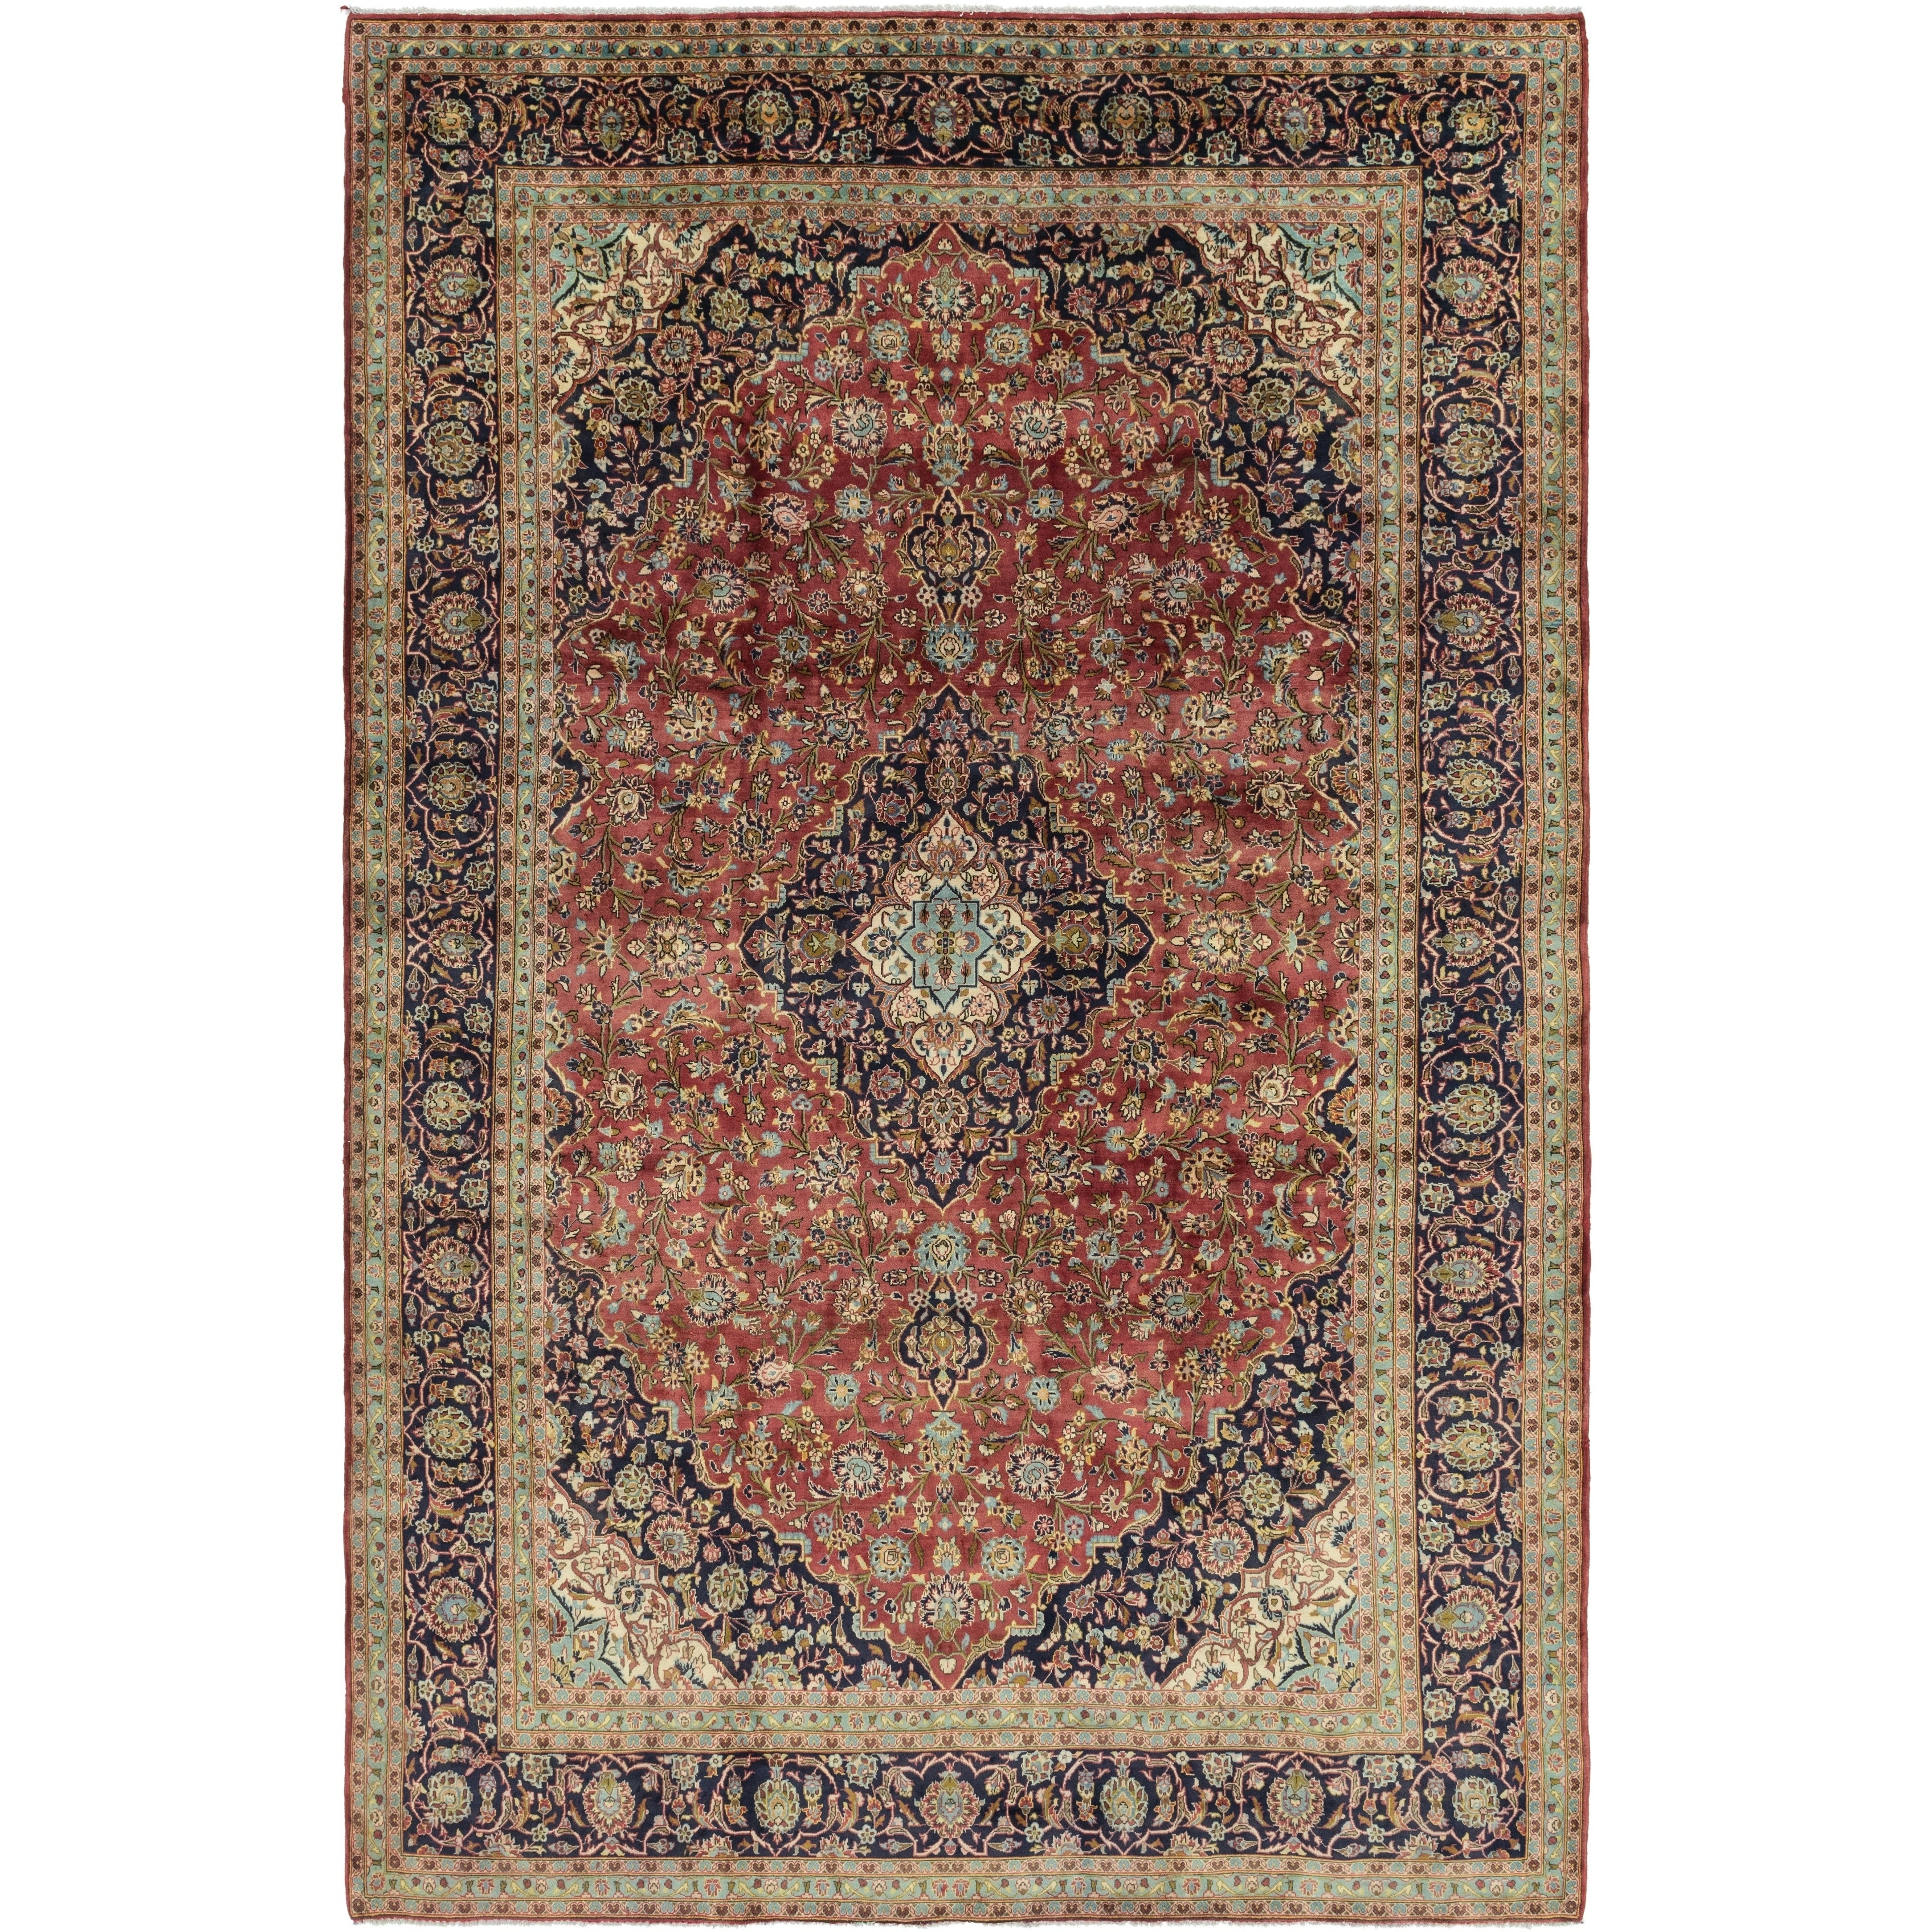 Hand Knotted Kashan Semi Antique Wool Area Rug - 9 10 x 15 (Red - 9 10 x 15)